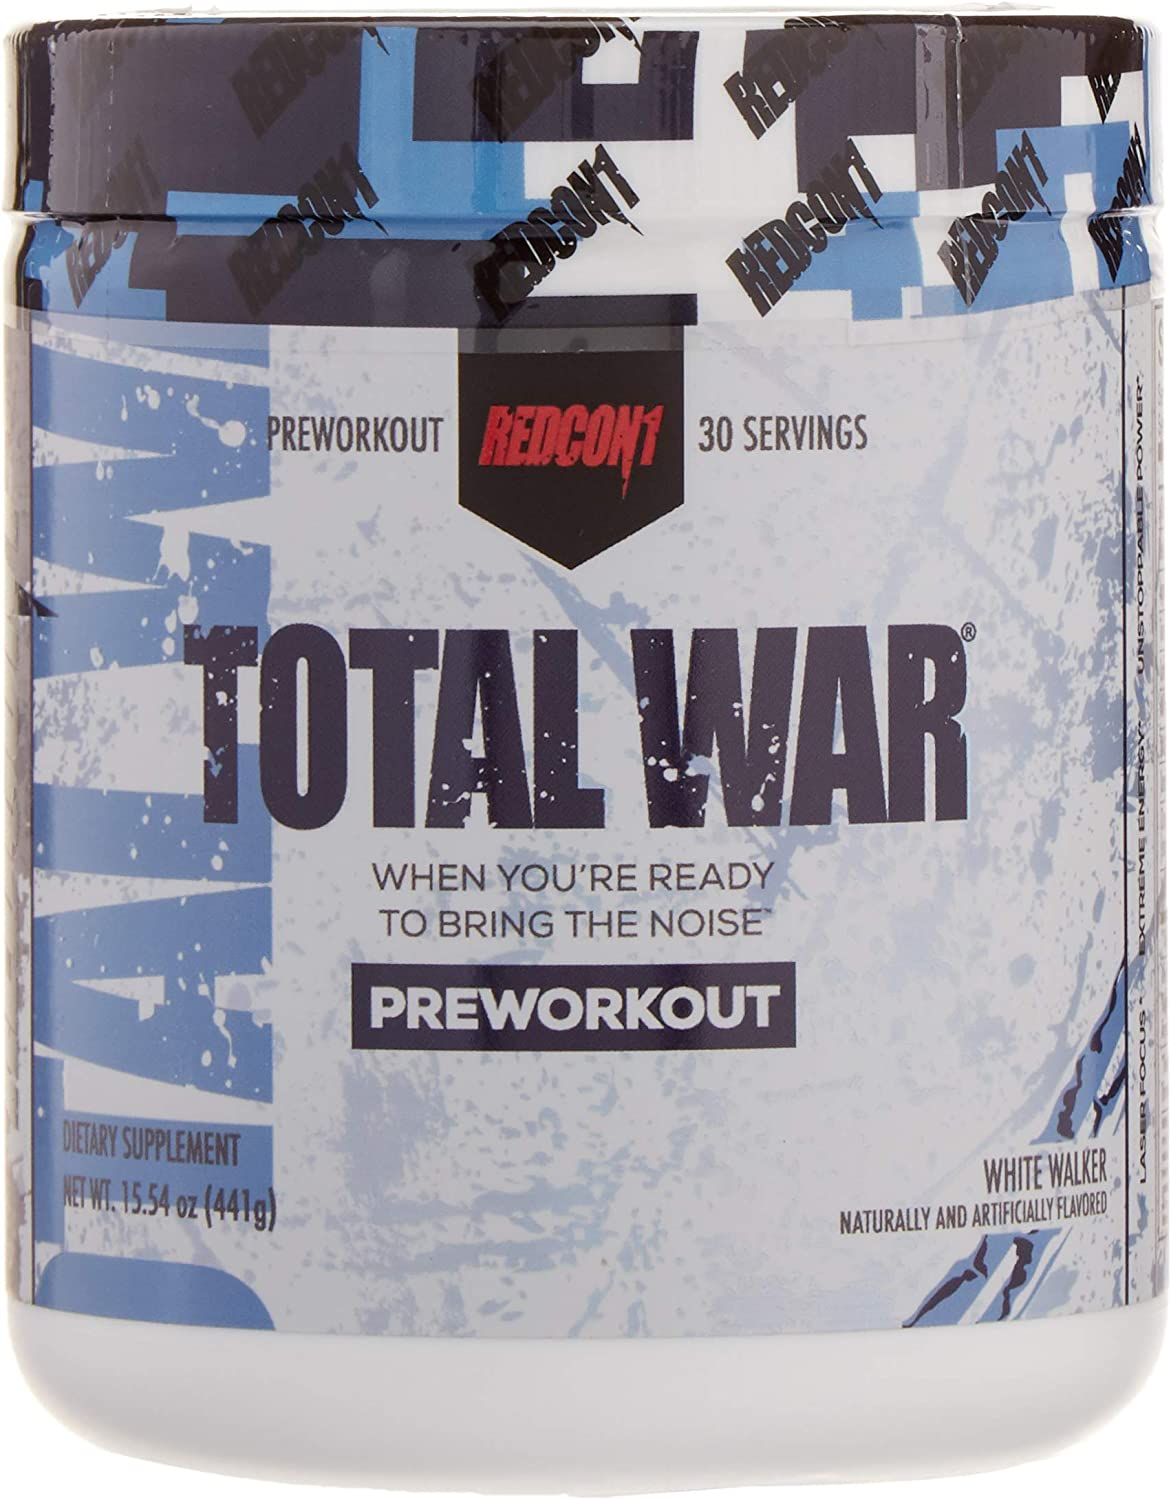 Redcon1 Total War – Pre Workout, 30 Servings, Boost Energy, Increase Endurance and Focus, Beta-Alanine, Caffeine White Walker